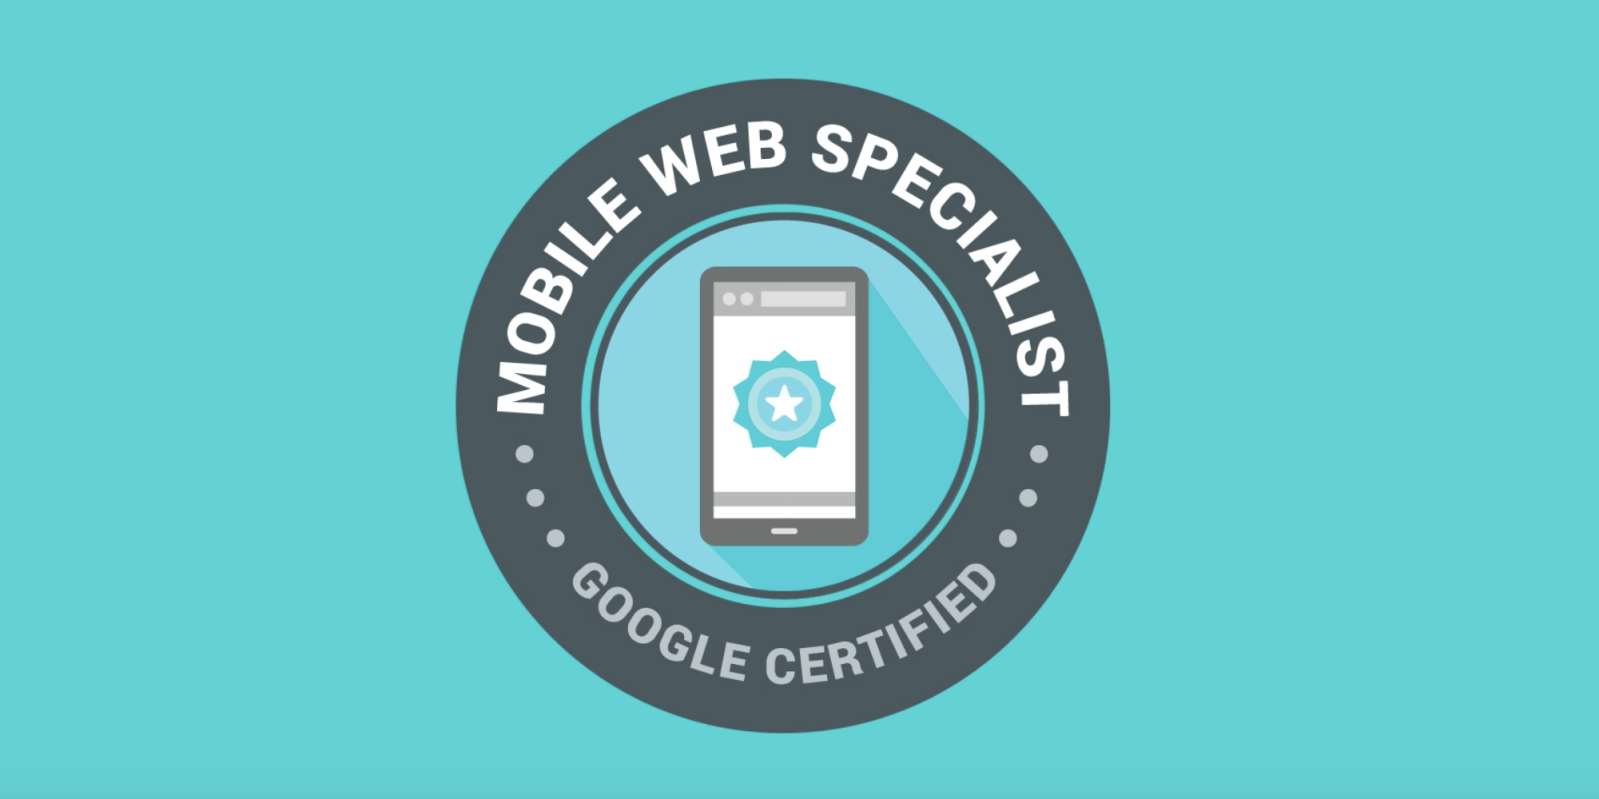 Googles Mobile Web Specialist Certification Aims To Help Web